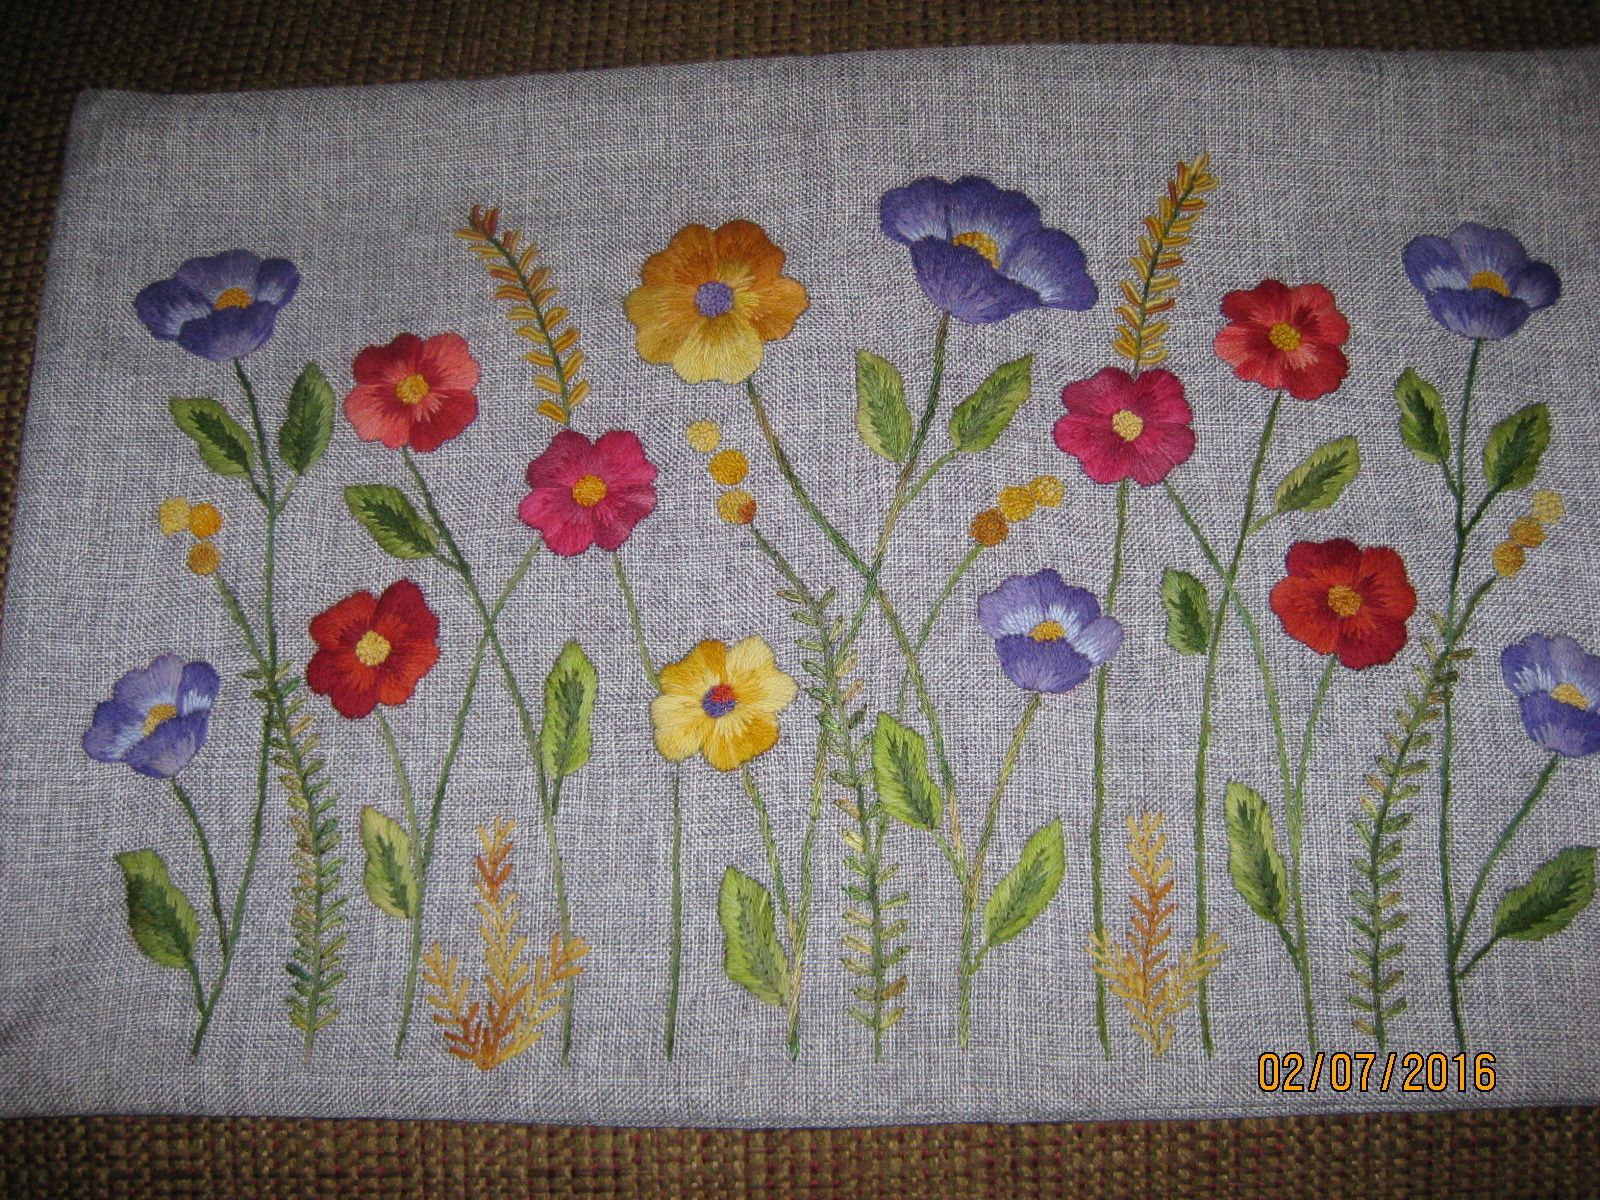 Pin By On Pinterest Embroidery Embroidery